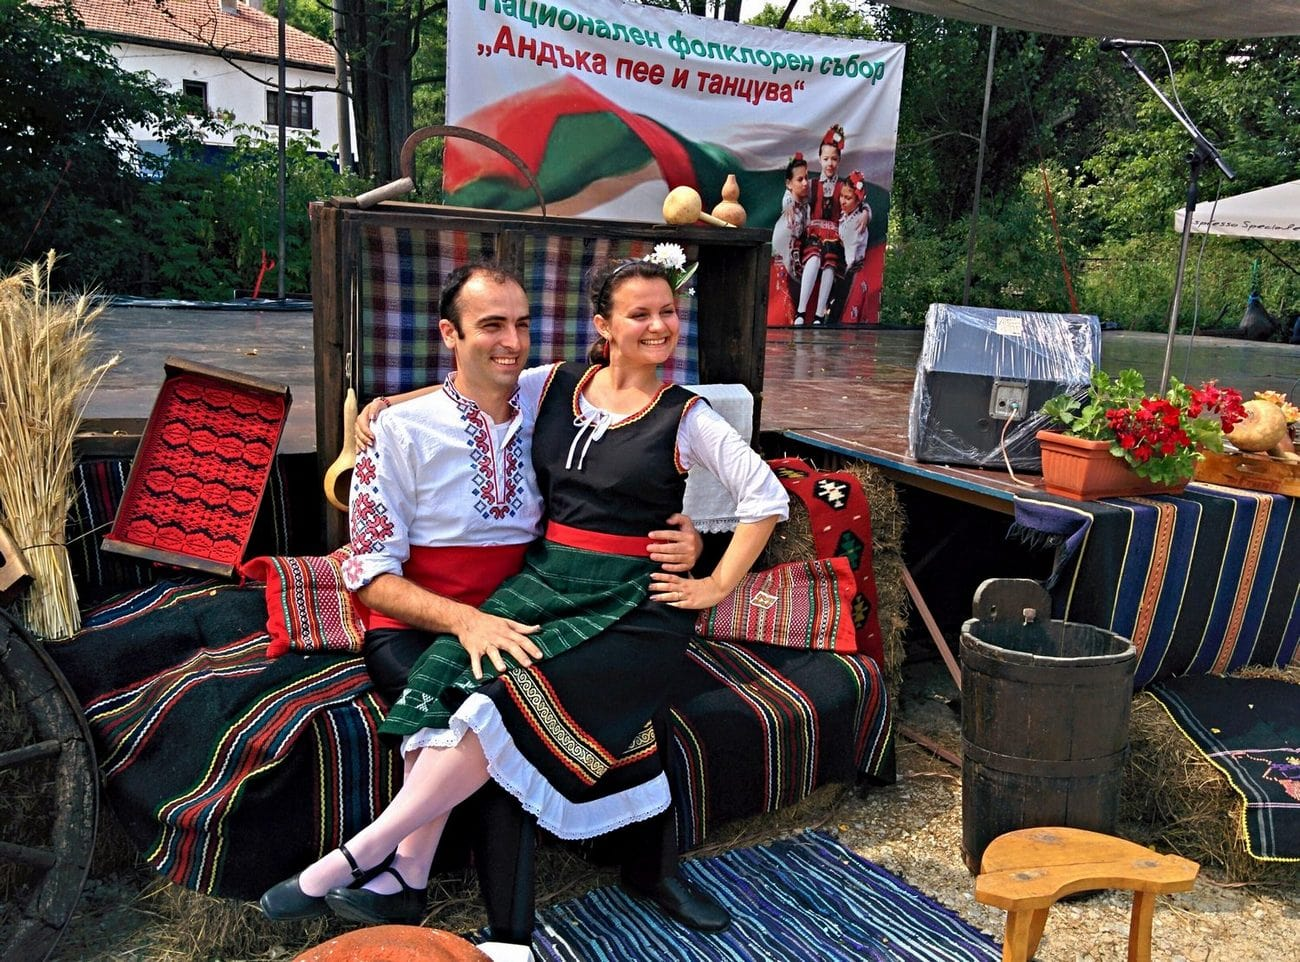 bulgarian folk dances, traditional costumes, bistra, nace, the magic of traveling, bulgaria